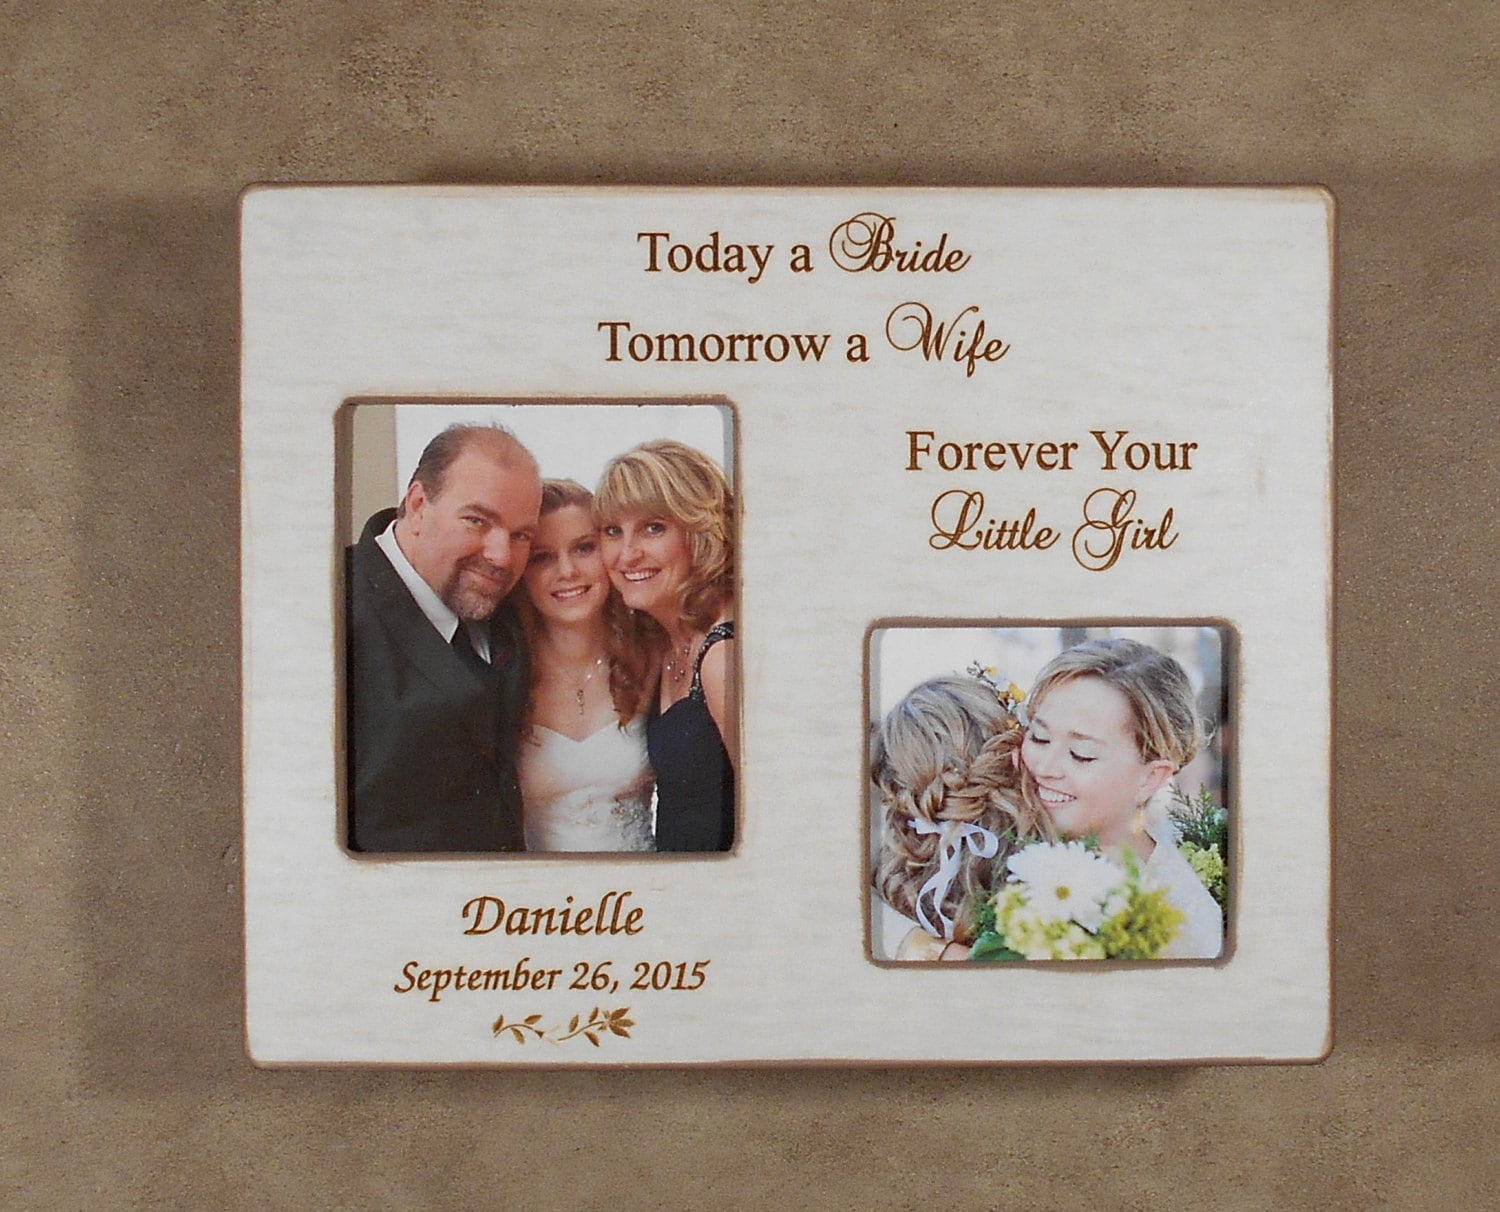 WEDDING GIFT DAD Today a Bride Tomorrow a Wife Forever Your